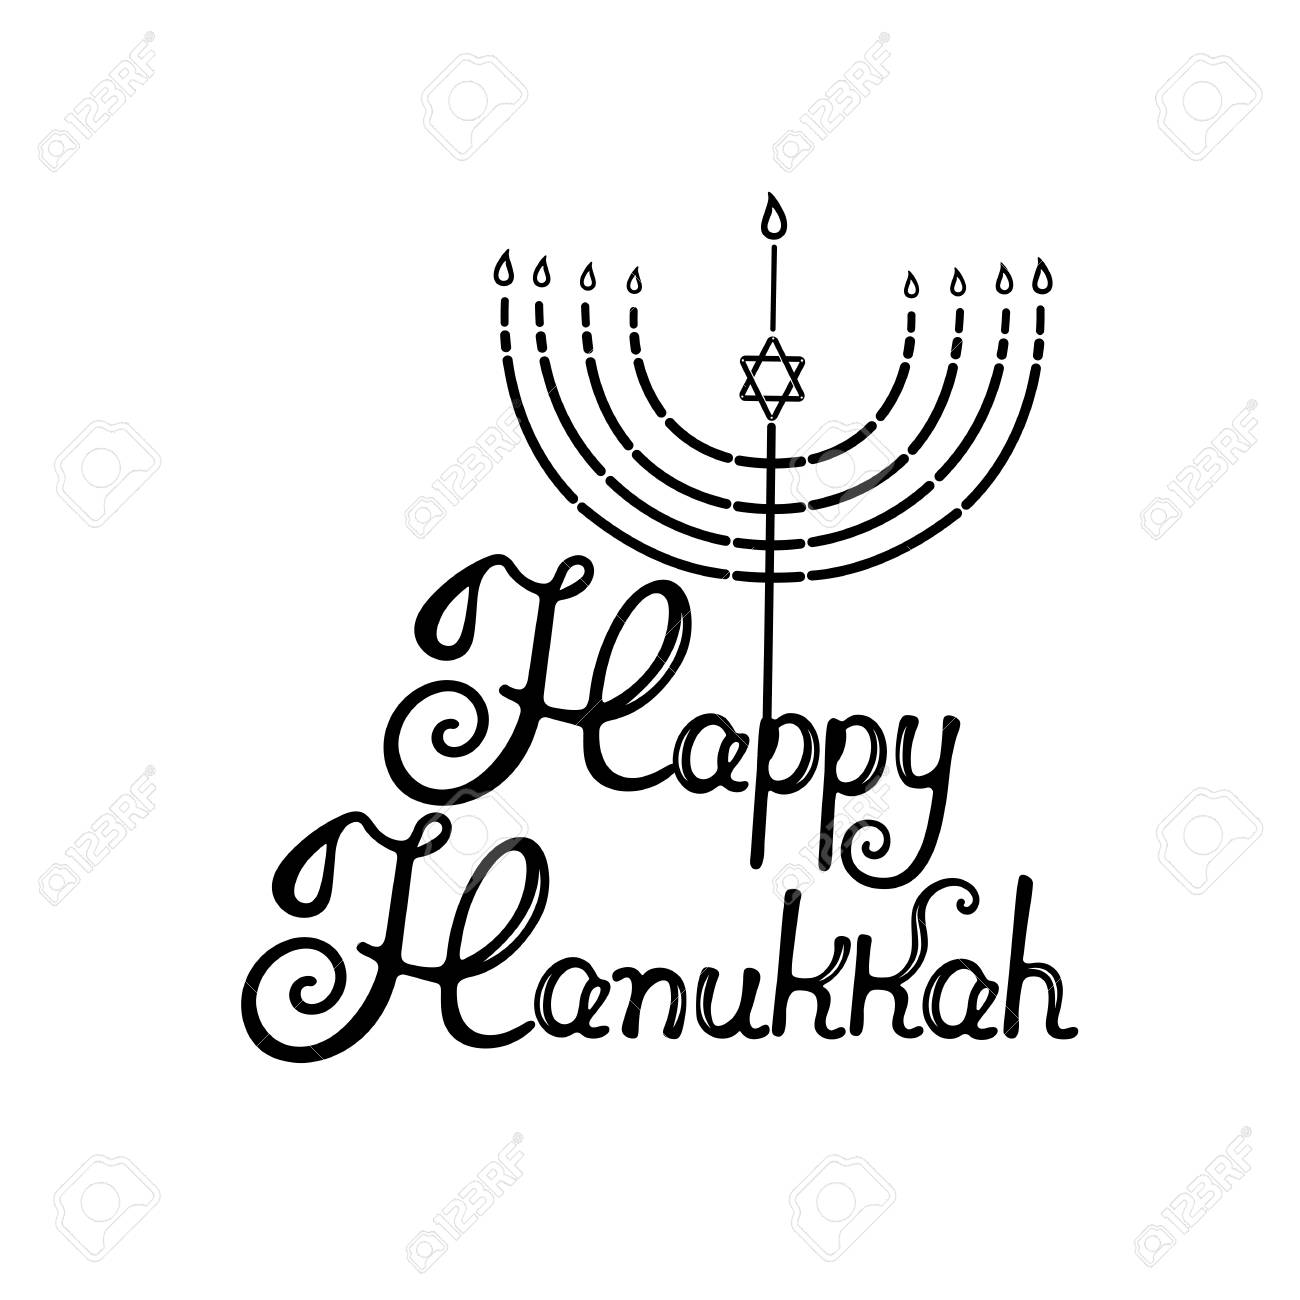 Happy Hanukkah Hand Lettering Menorah With The Star Of David Royalty Free Cliparts Vectors And Stock Illustration Image 90589096